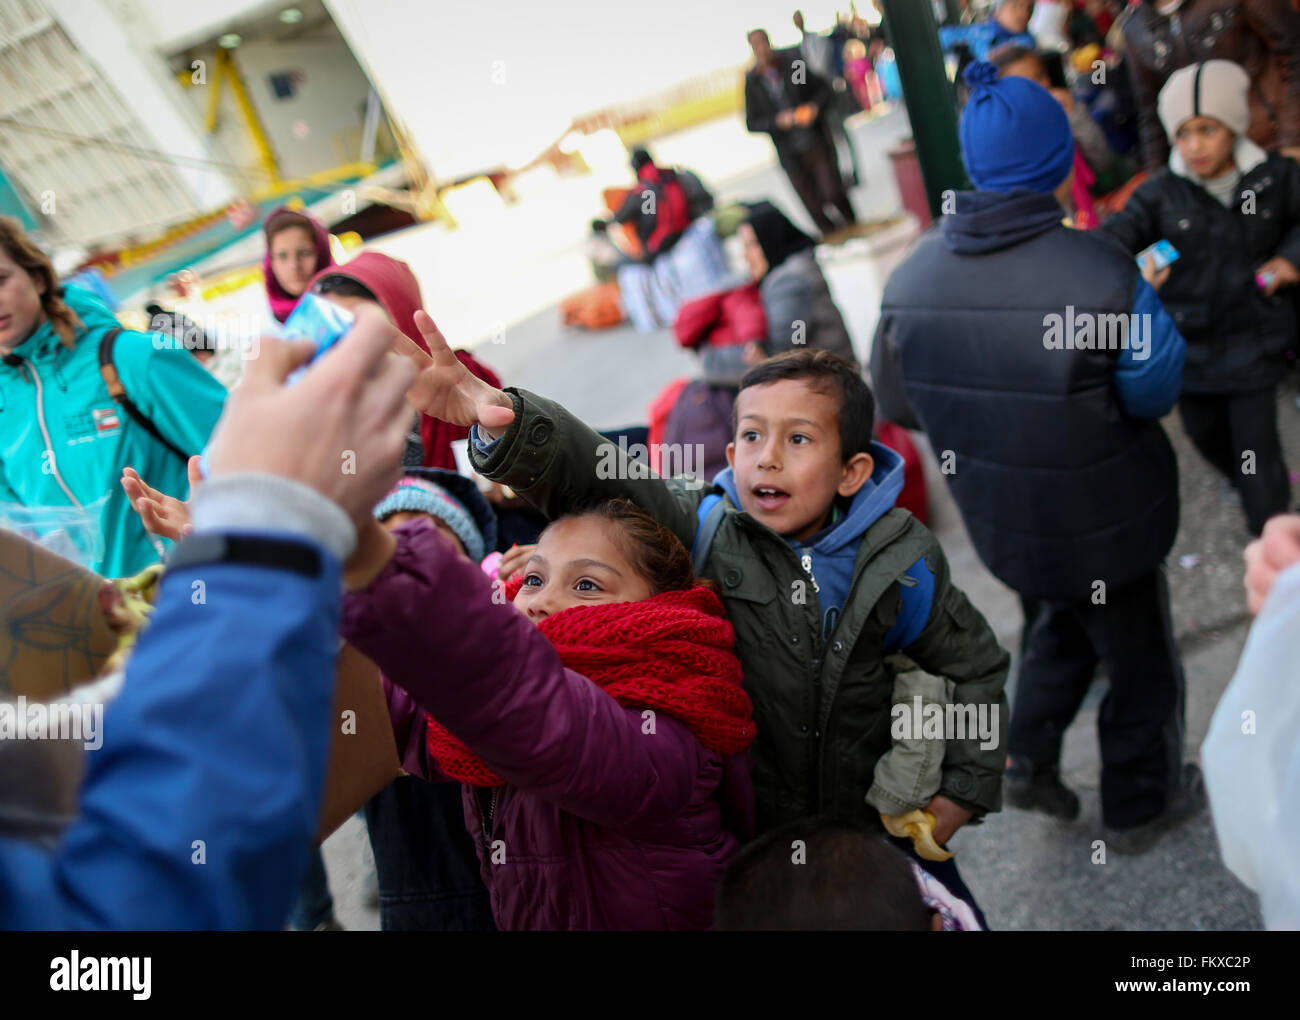 Lesbos, Greece. 10th March, 2016. Refugee children grasp at sweets prior to the departure of a ferry headed to Piraeus, - Stock Image